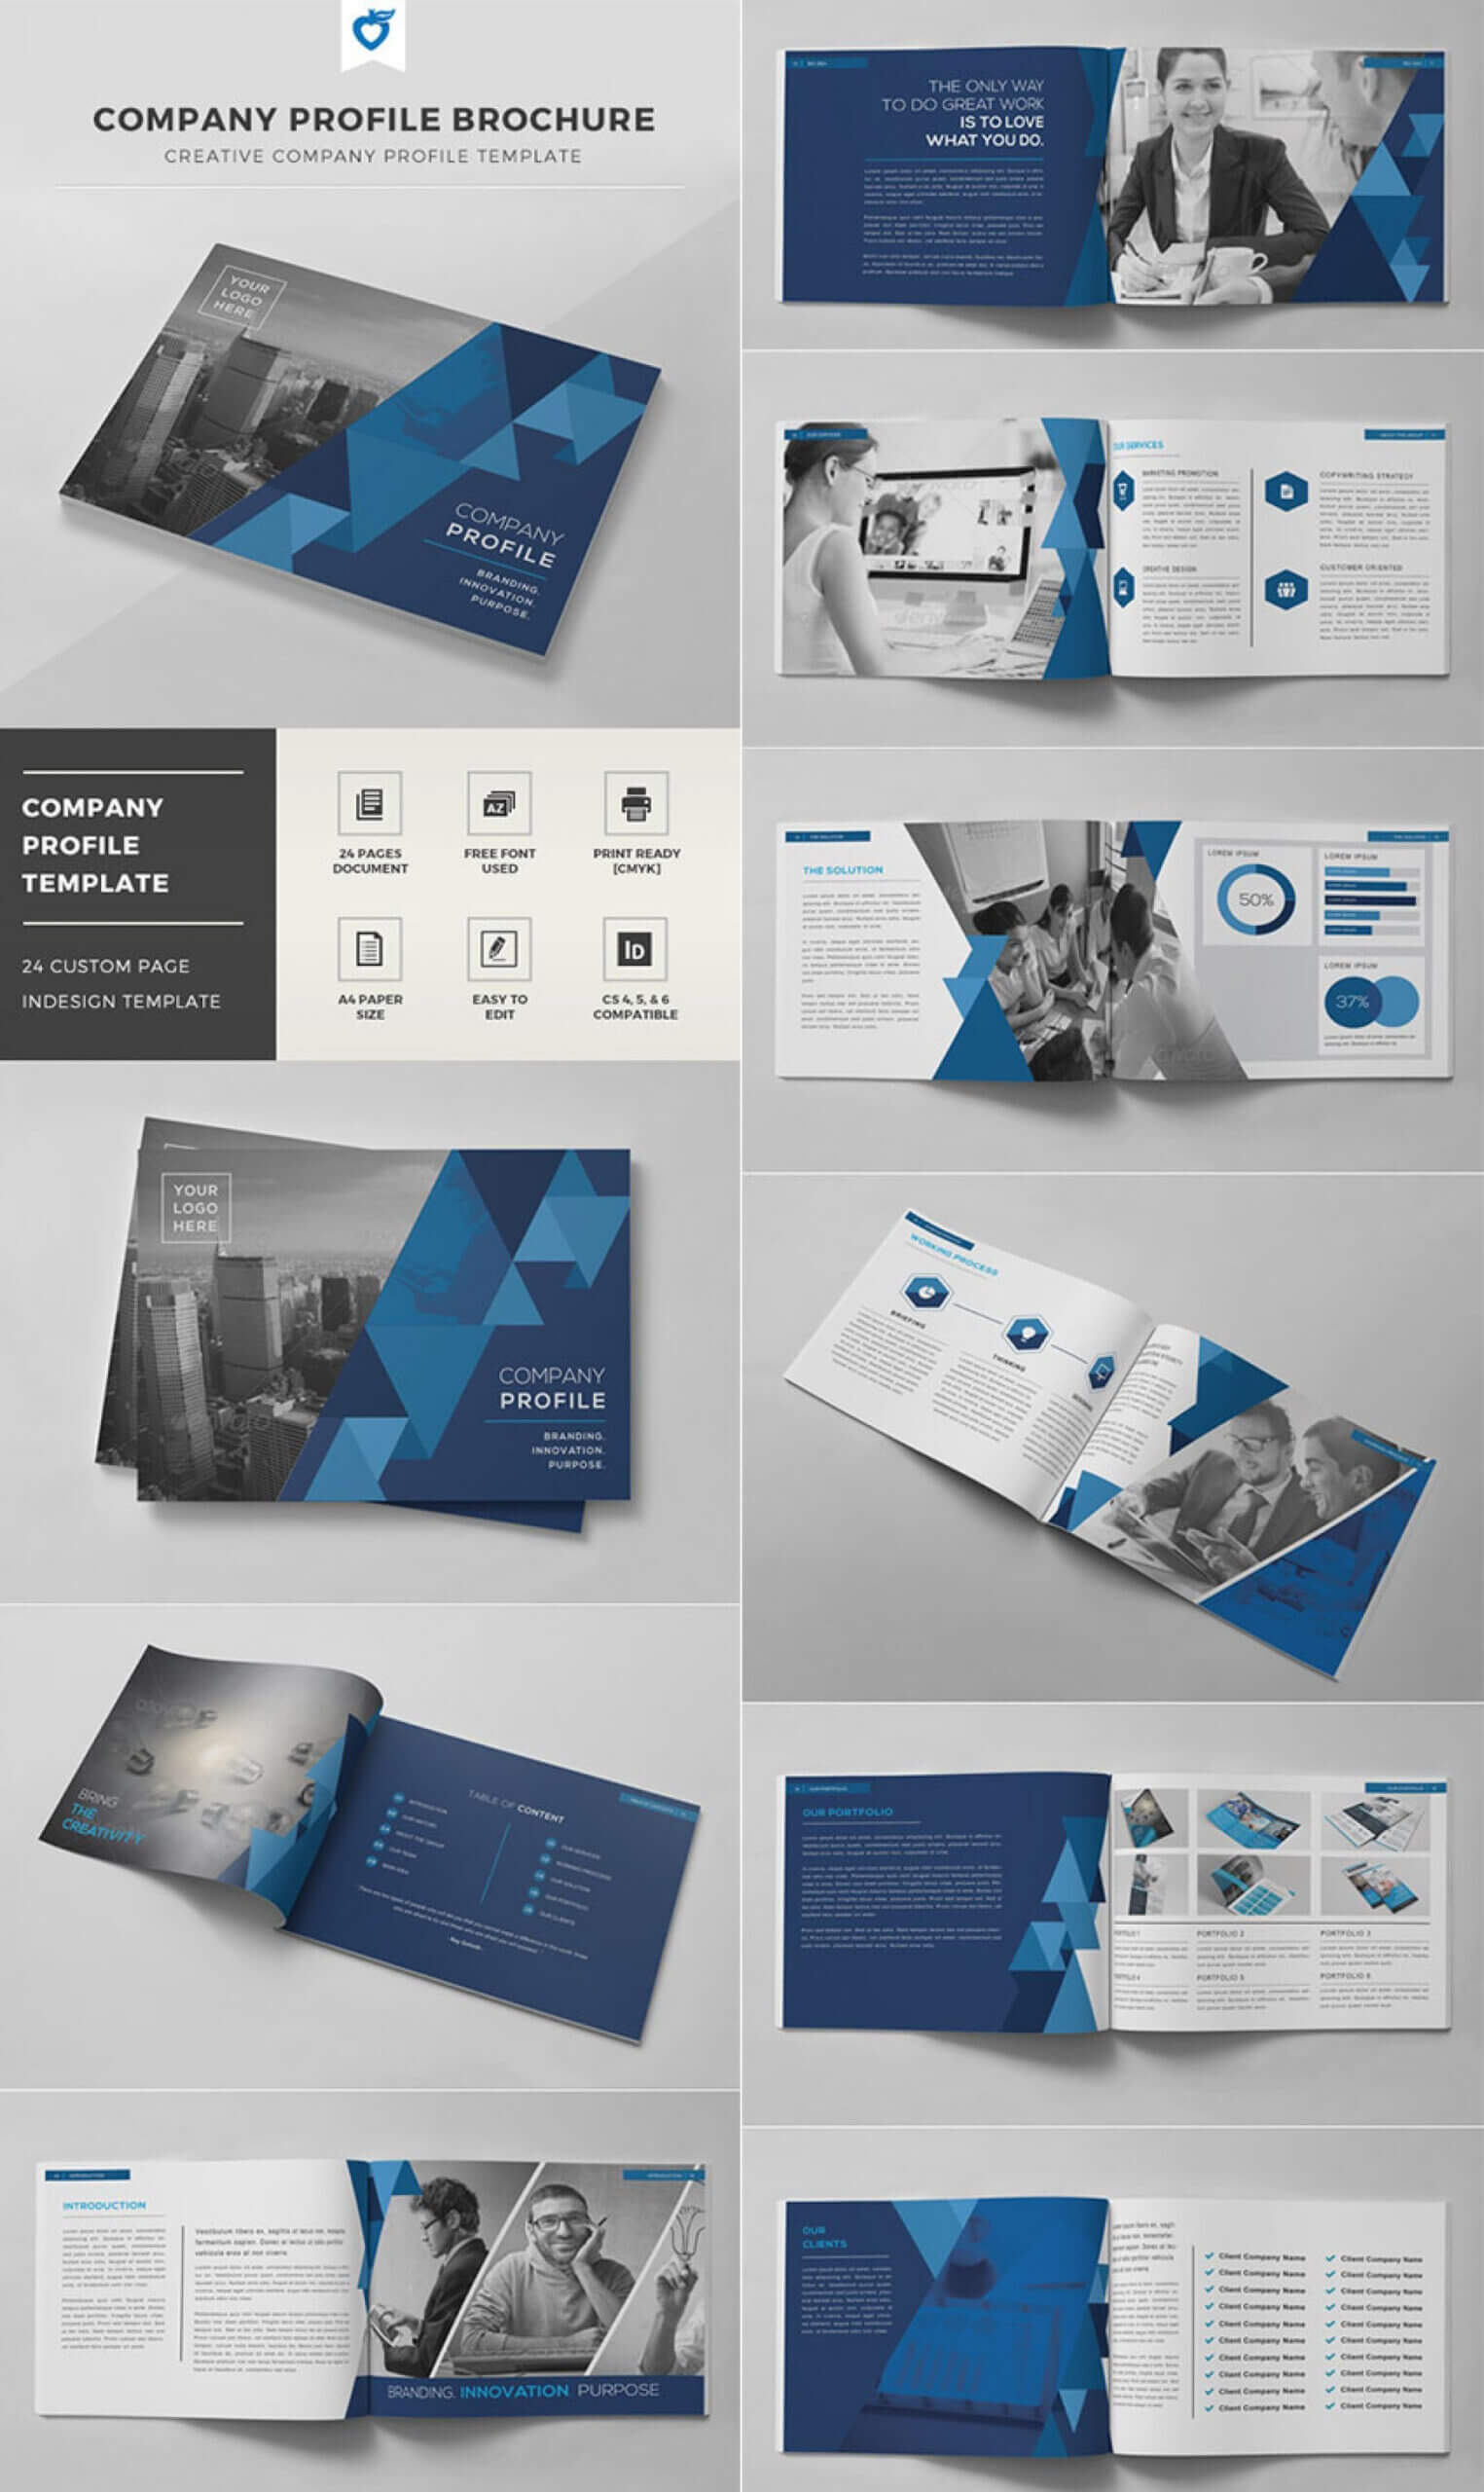 008 Indesign Brochure Templates Free Download Template Throughout Brochure Template Indesign Free Download